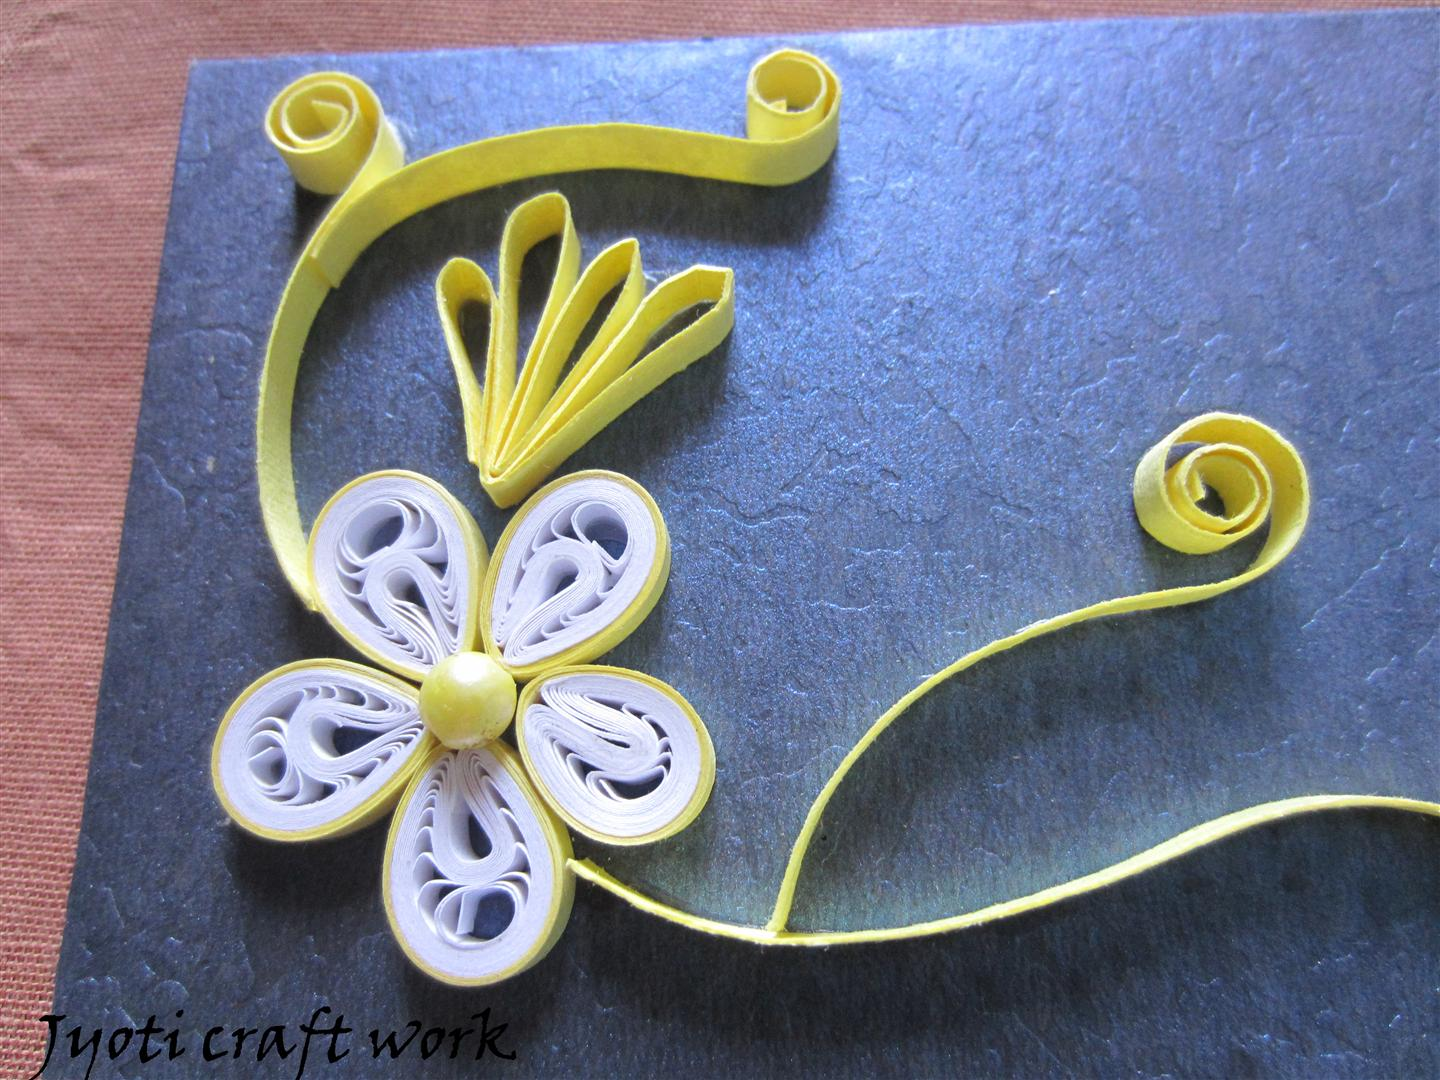 My craft work: Quilled envelopes for Simple Quilling Designs For Envelopes  56mzq